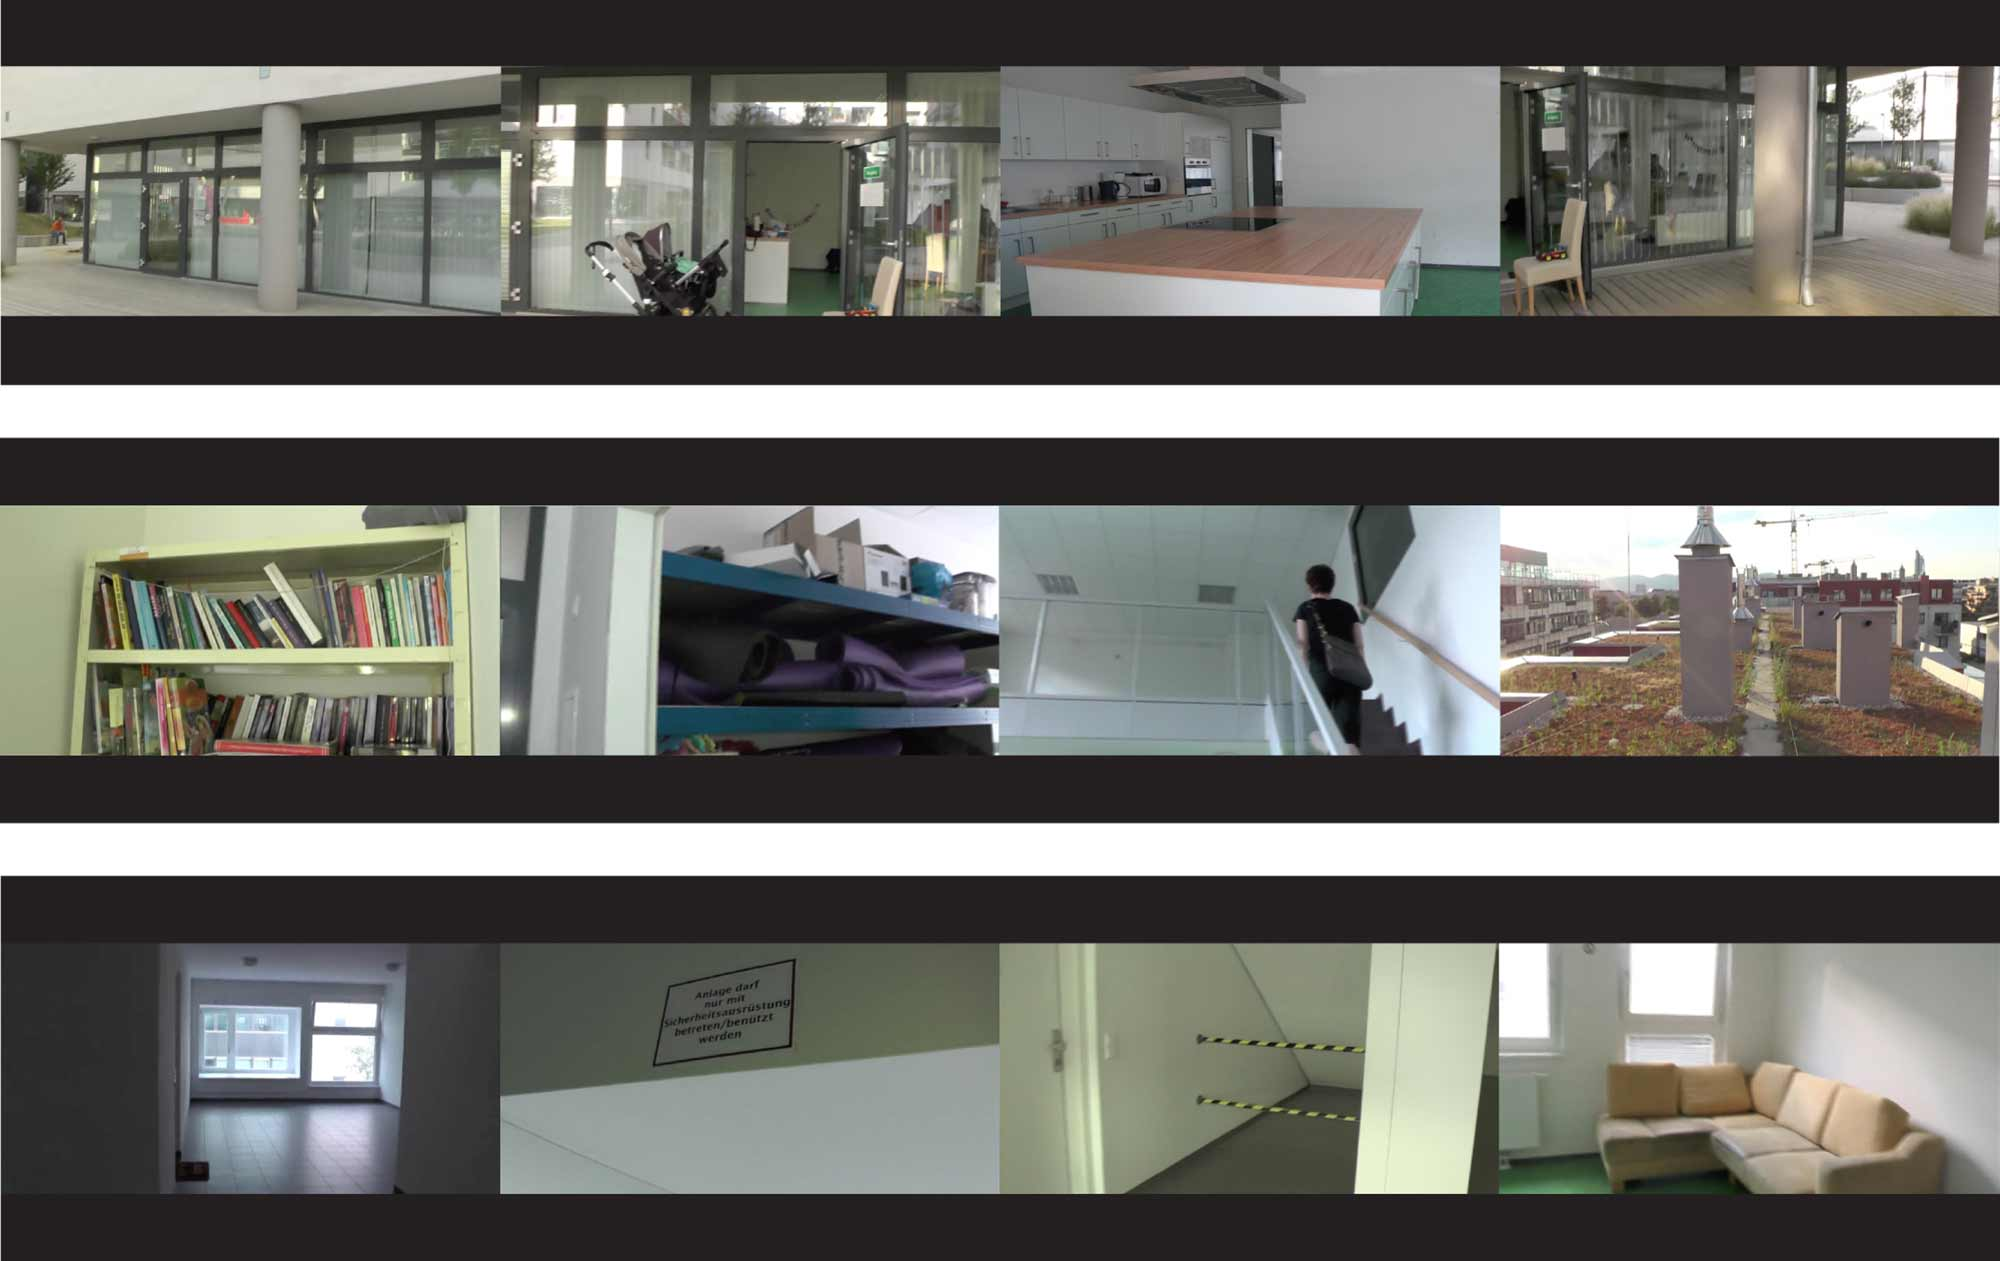 2: Paranoid constructions: empty corridors, initially designed as zones for encounters but empty today due to liability issues. Video stills: Action Archive + Beatrice Stude